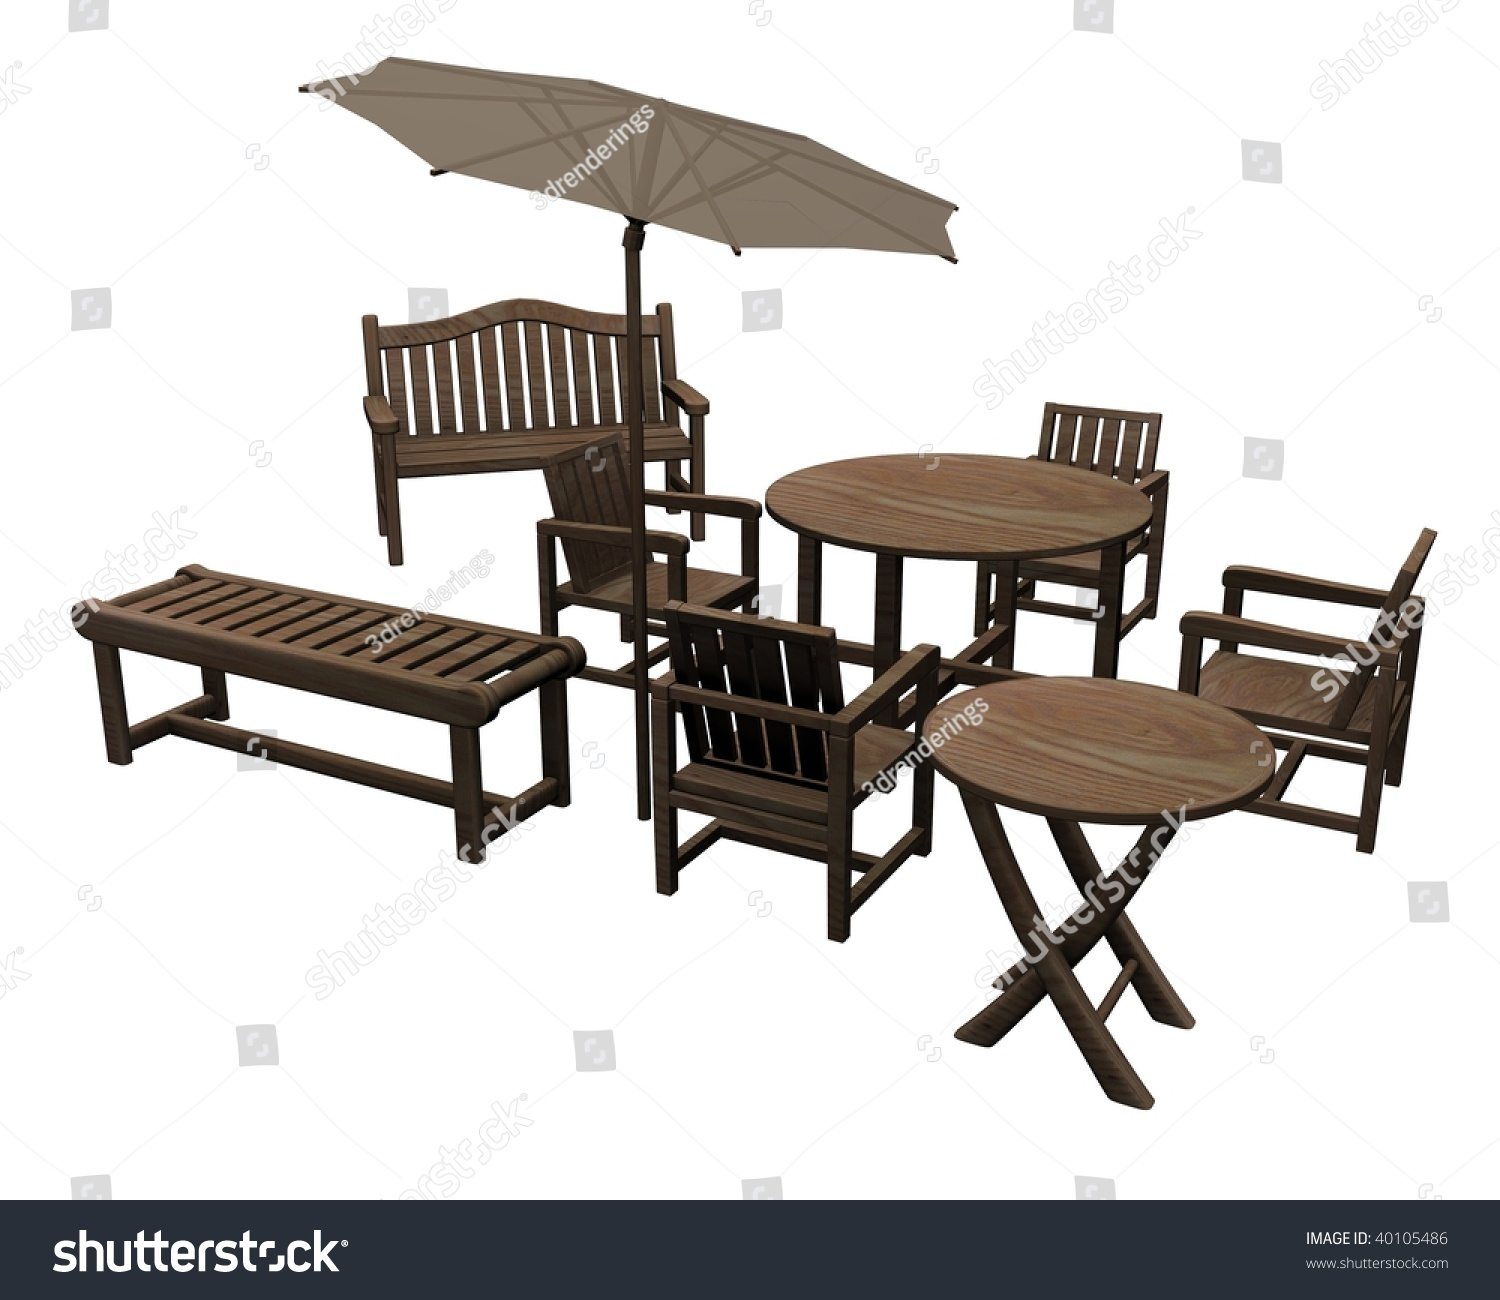 3d render of garden furniture - Garden Furniture 3d